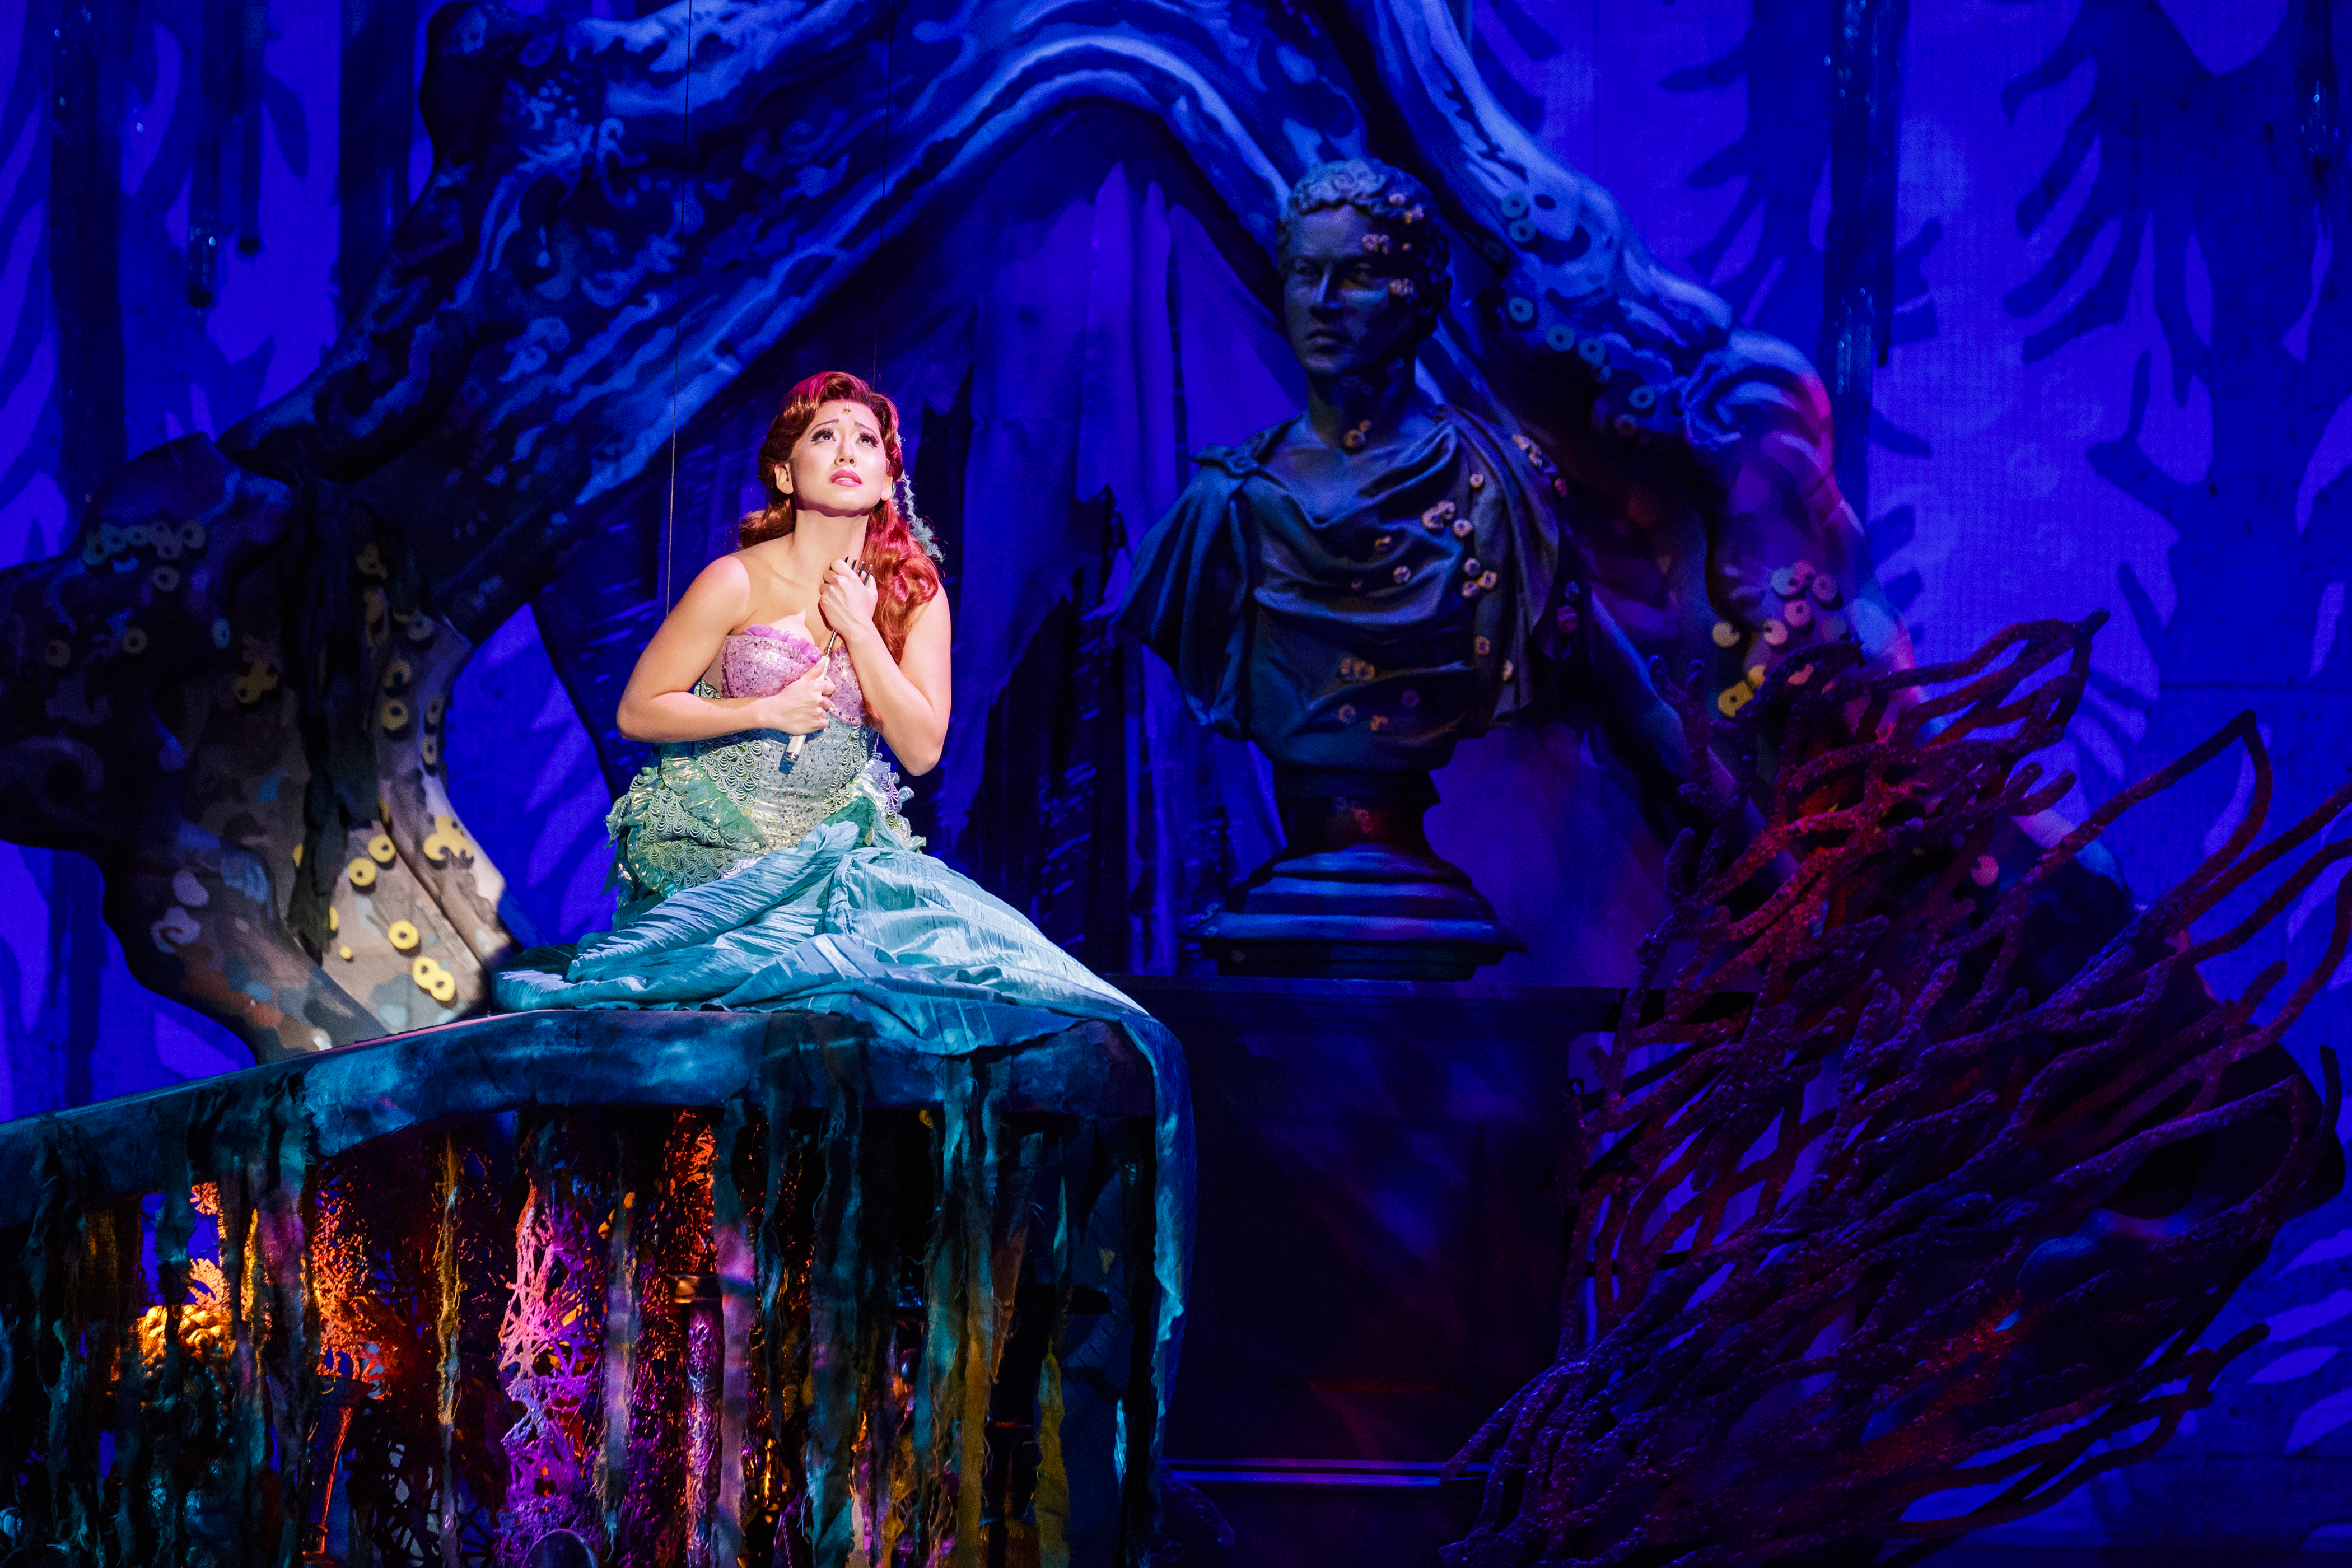 Diana Huey as Ariel in The 5th Avenue Theatre's production of The Little Mermaid. Photo by Mark Kitaoka.